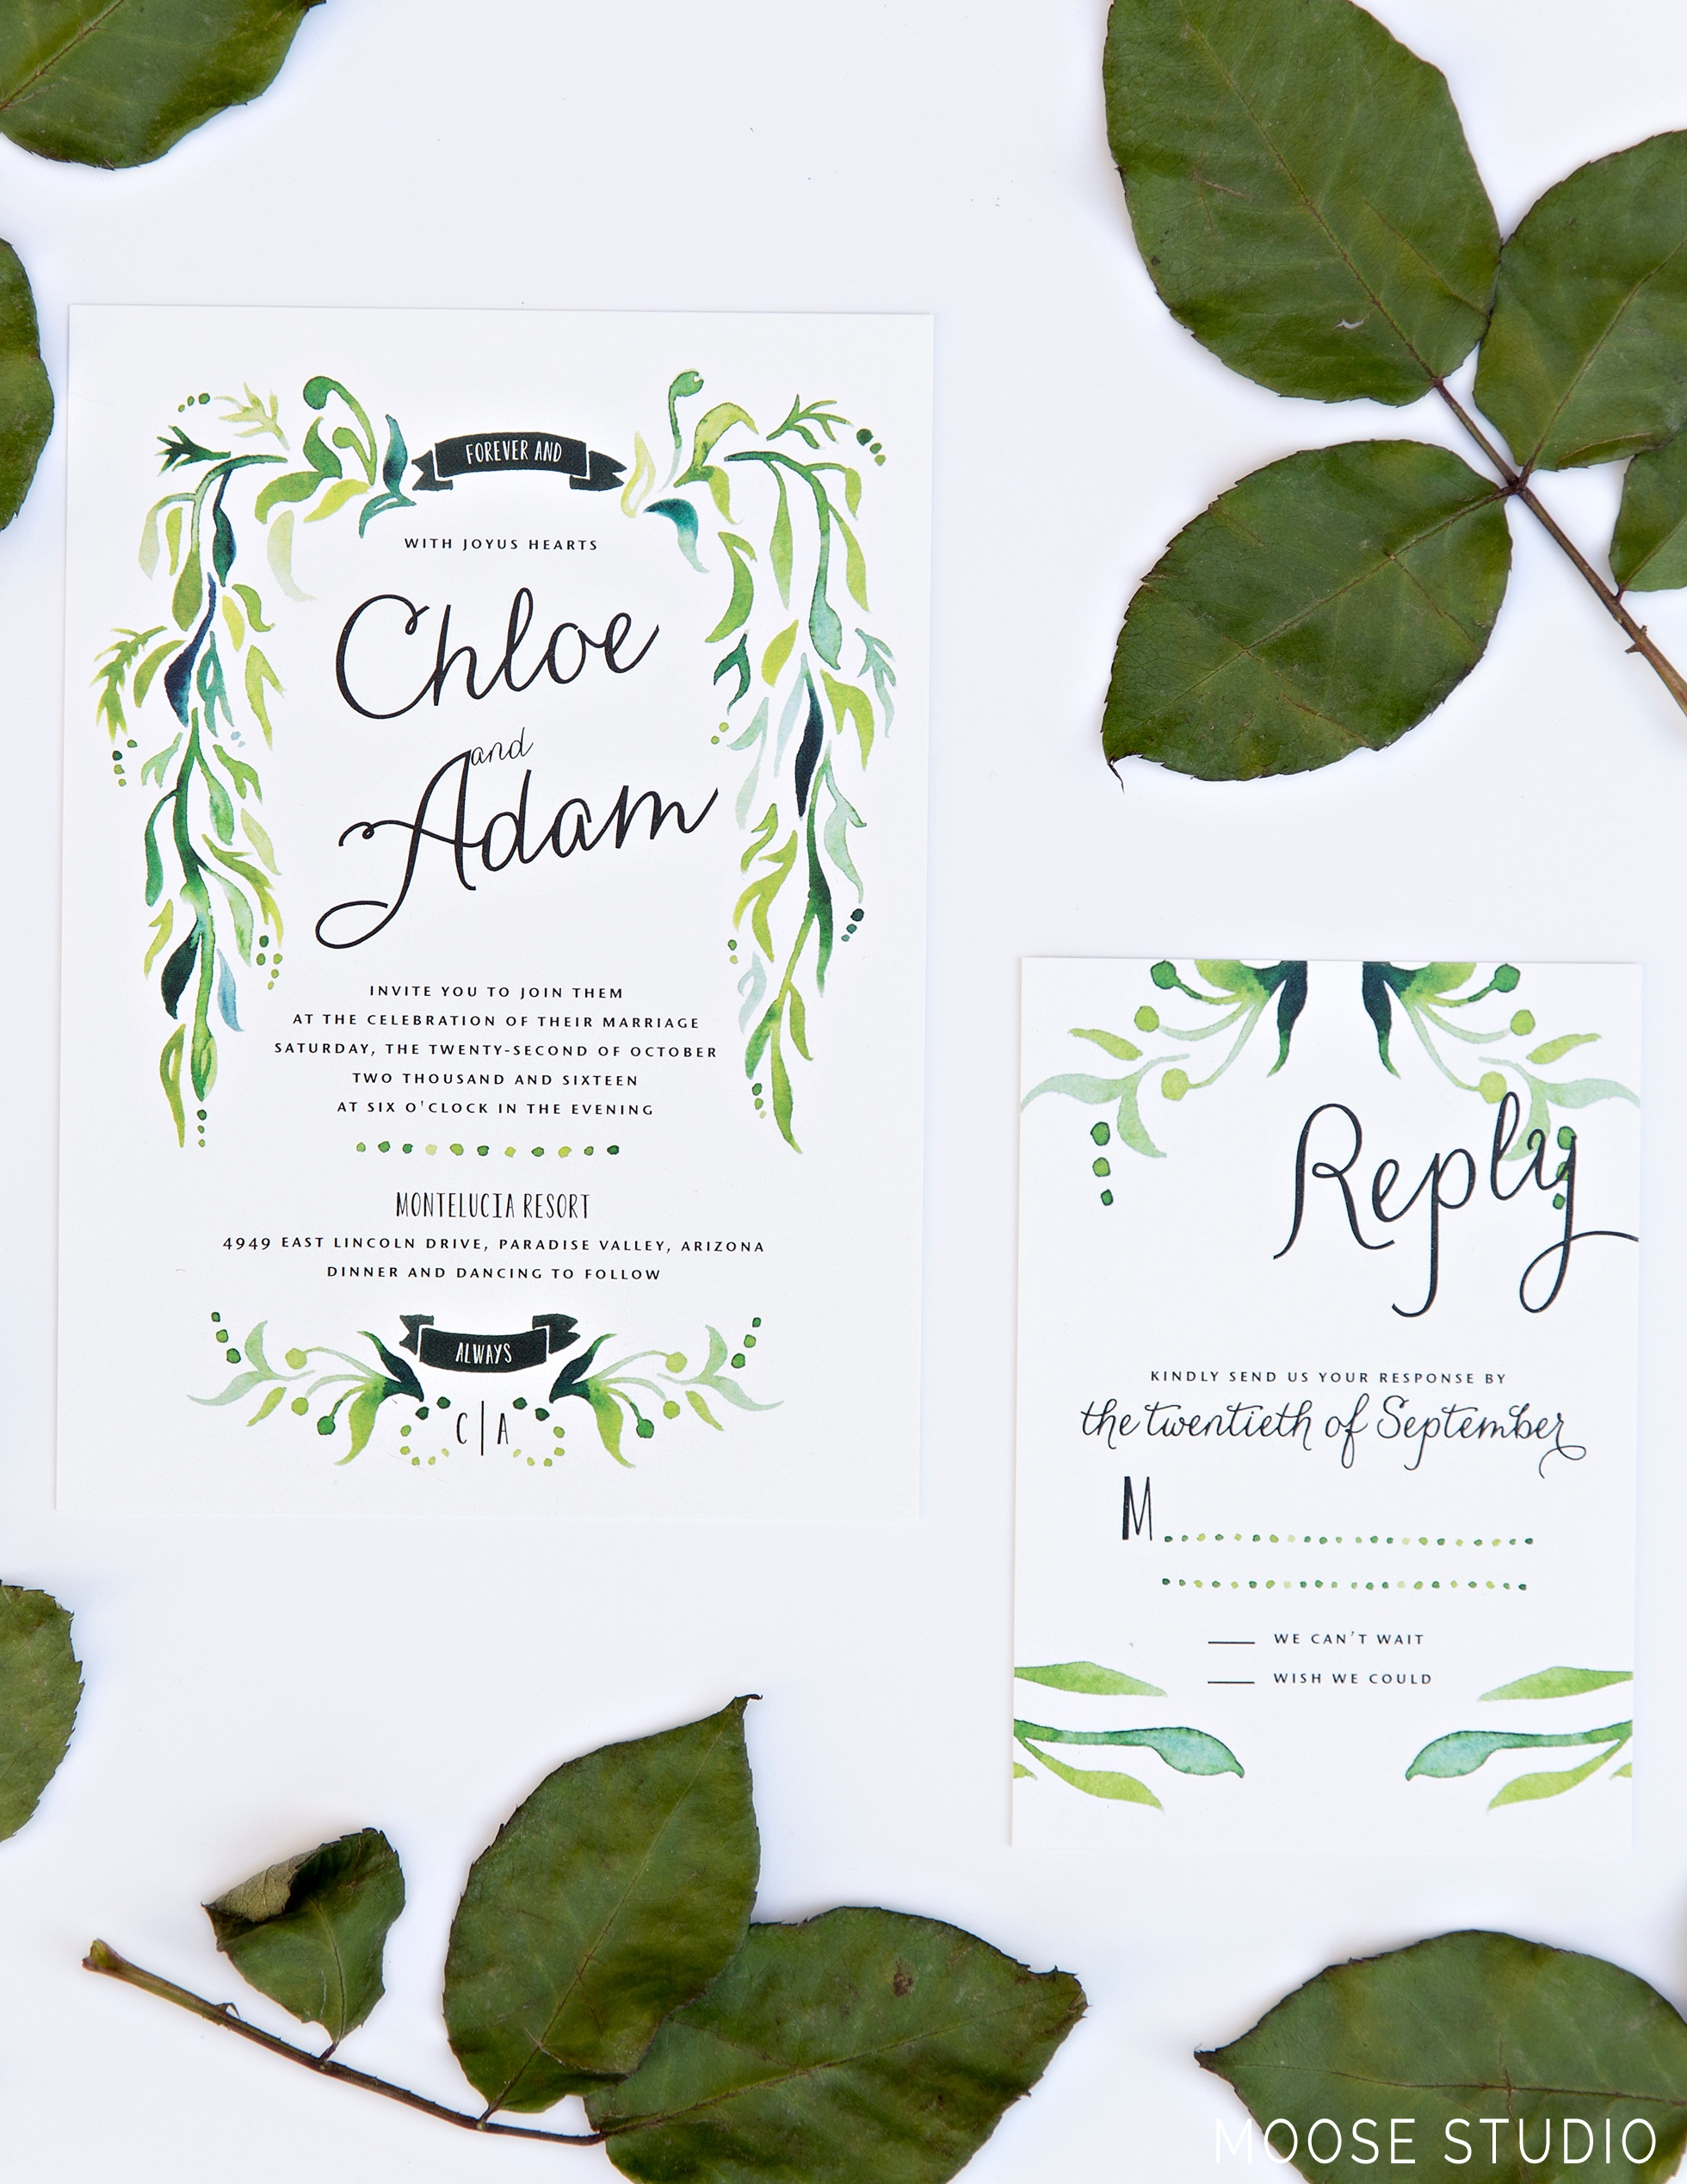 How To Properly Address Wedding Invitations | Moose Studio